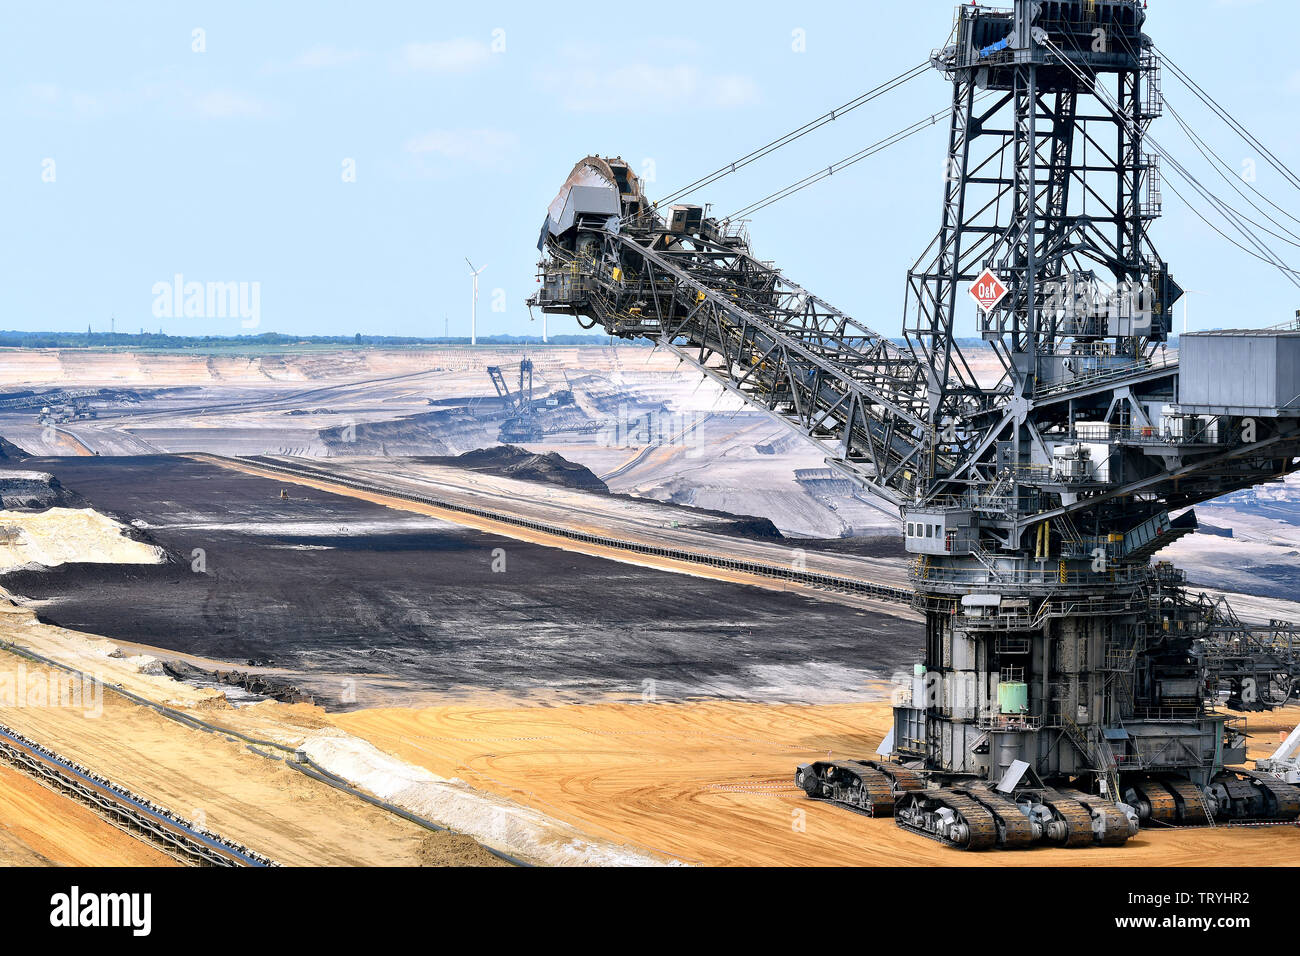 Bucket wheel excavator and wind turbines in the Garzweiler brown coal opencast mining in the Rhineland brown coal mining area. Stock Photo